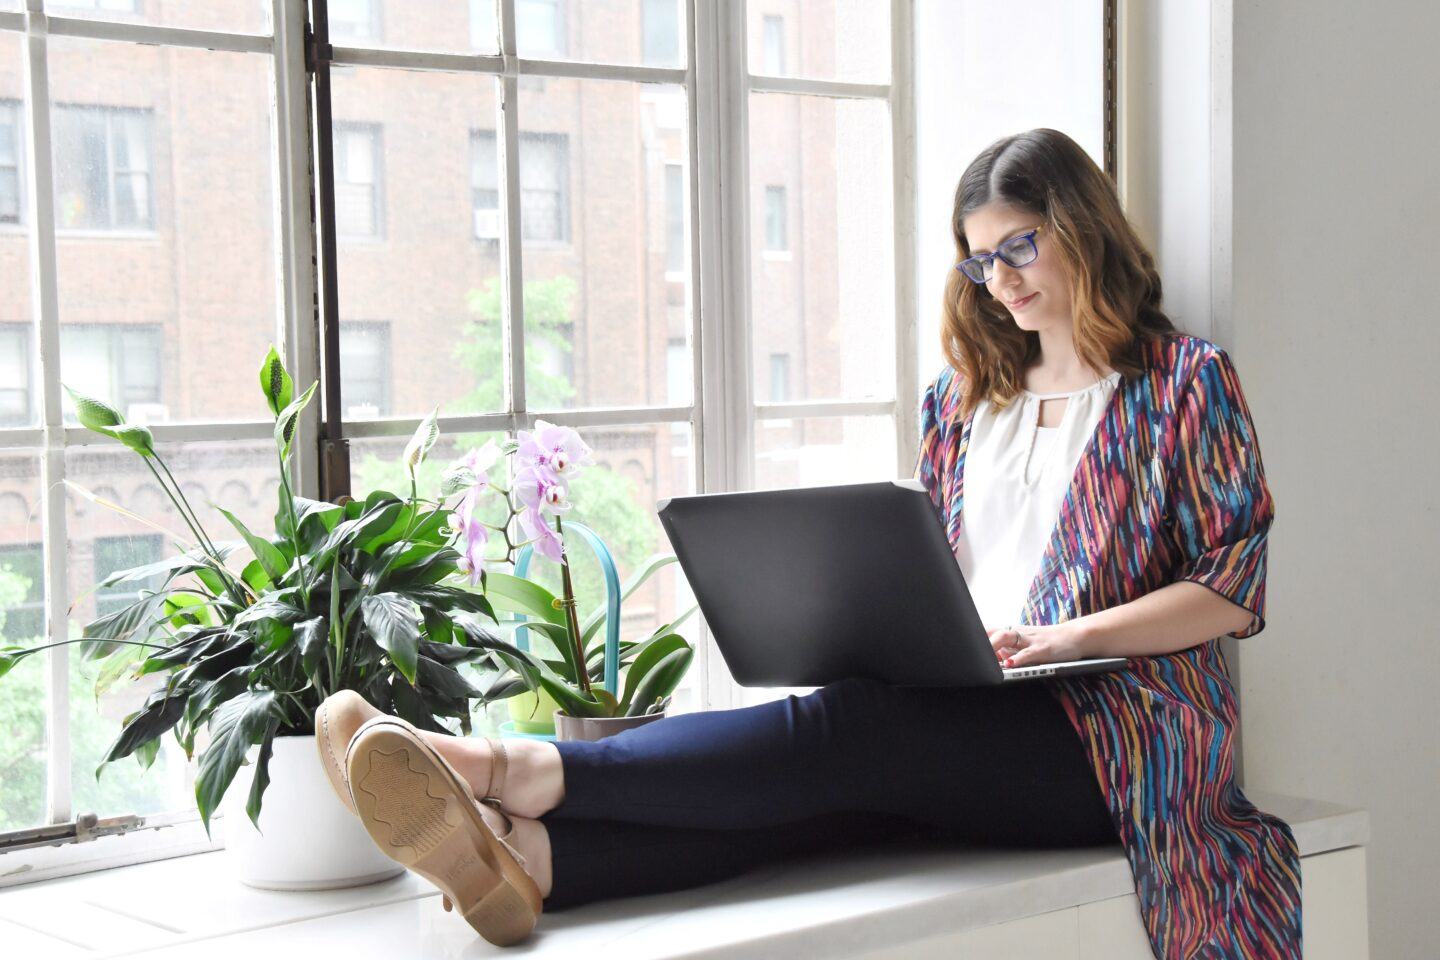 Working woman on her laptop for her new job